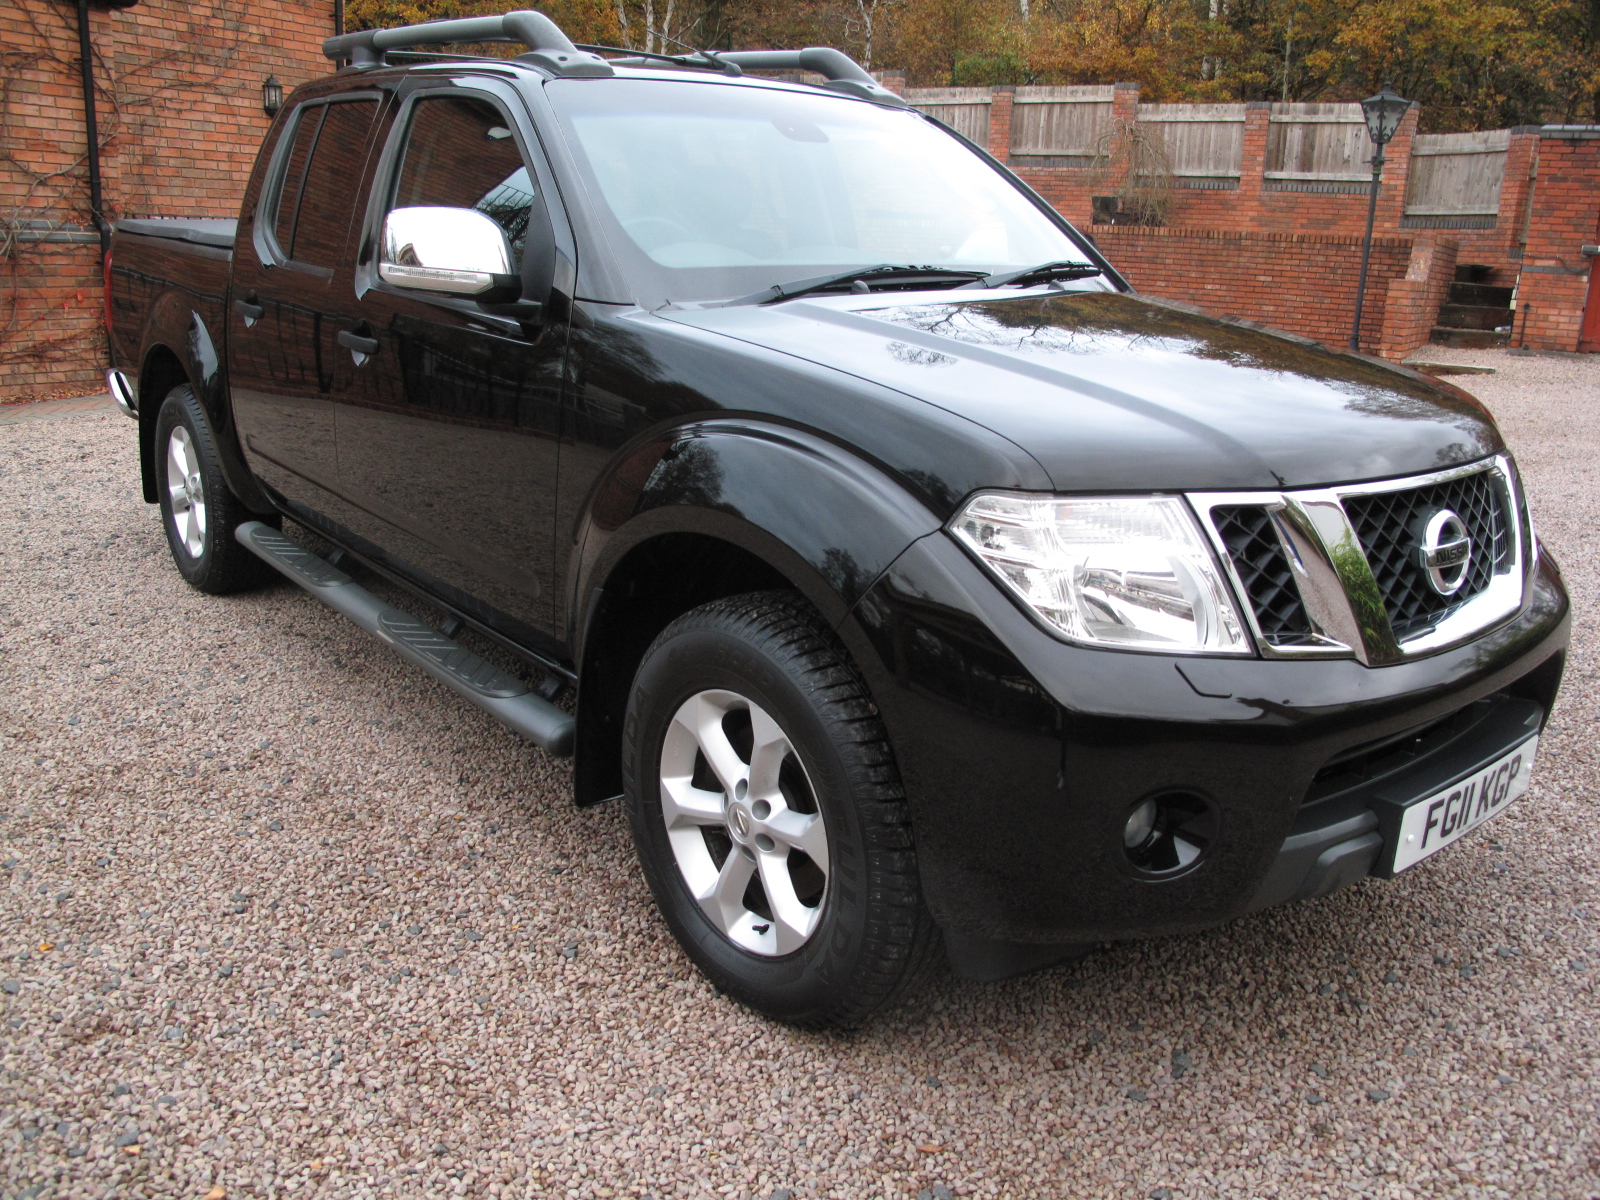 2011 11 Nissan Navara 2.5 dCi Tekna Premium Connect Double Cab Pickup VERY LOW MILES! ABSOLUTELY PRISTINE! NO VAT!